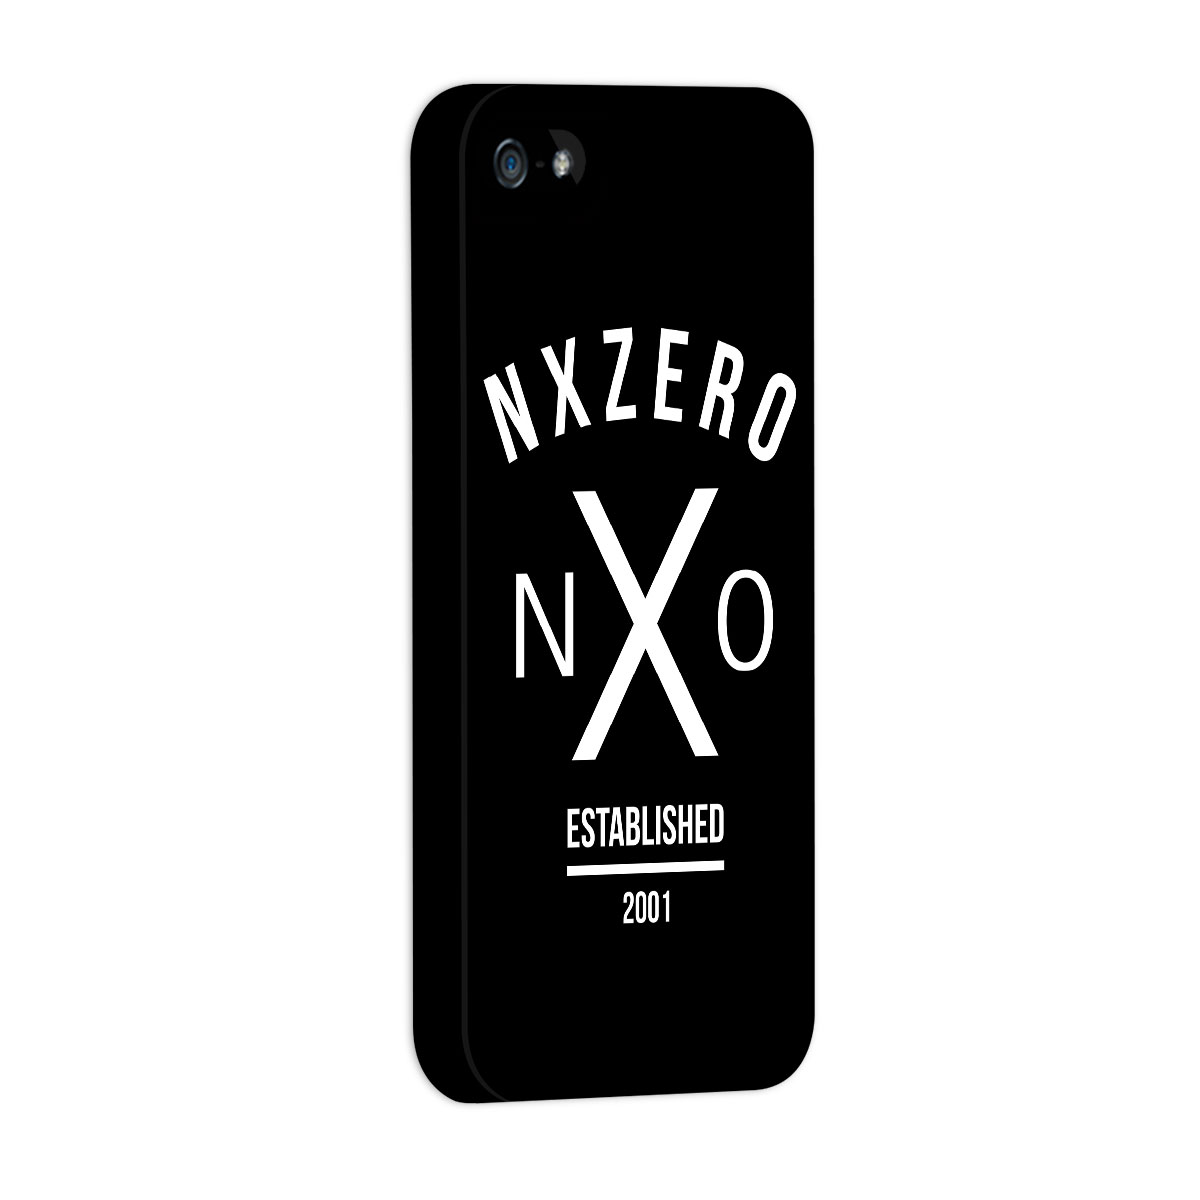 Capa de iPhone 5/5S NXZero NX0